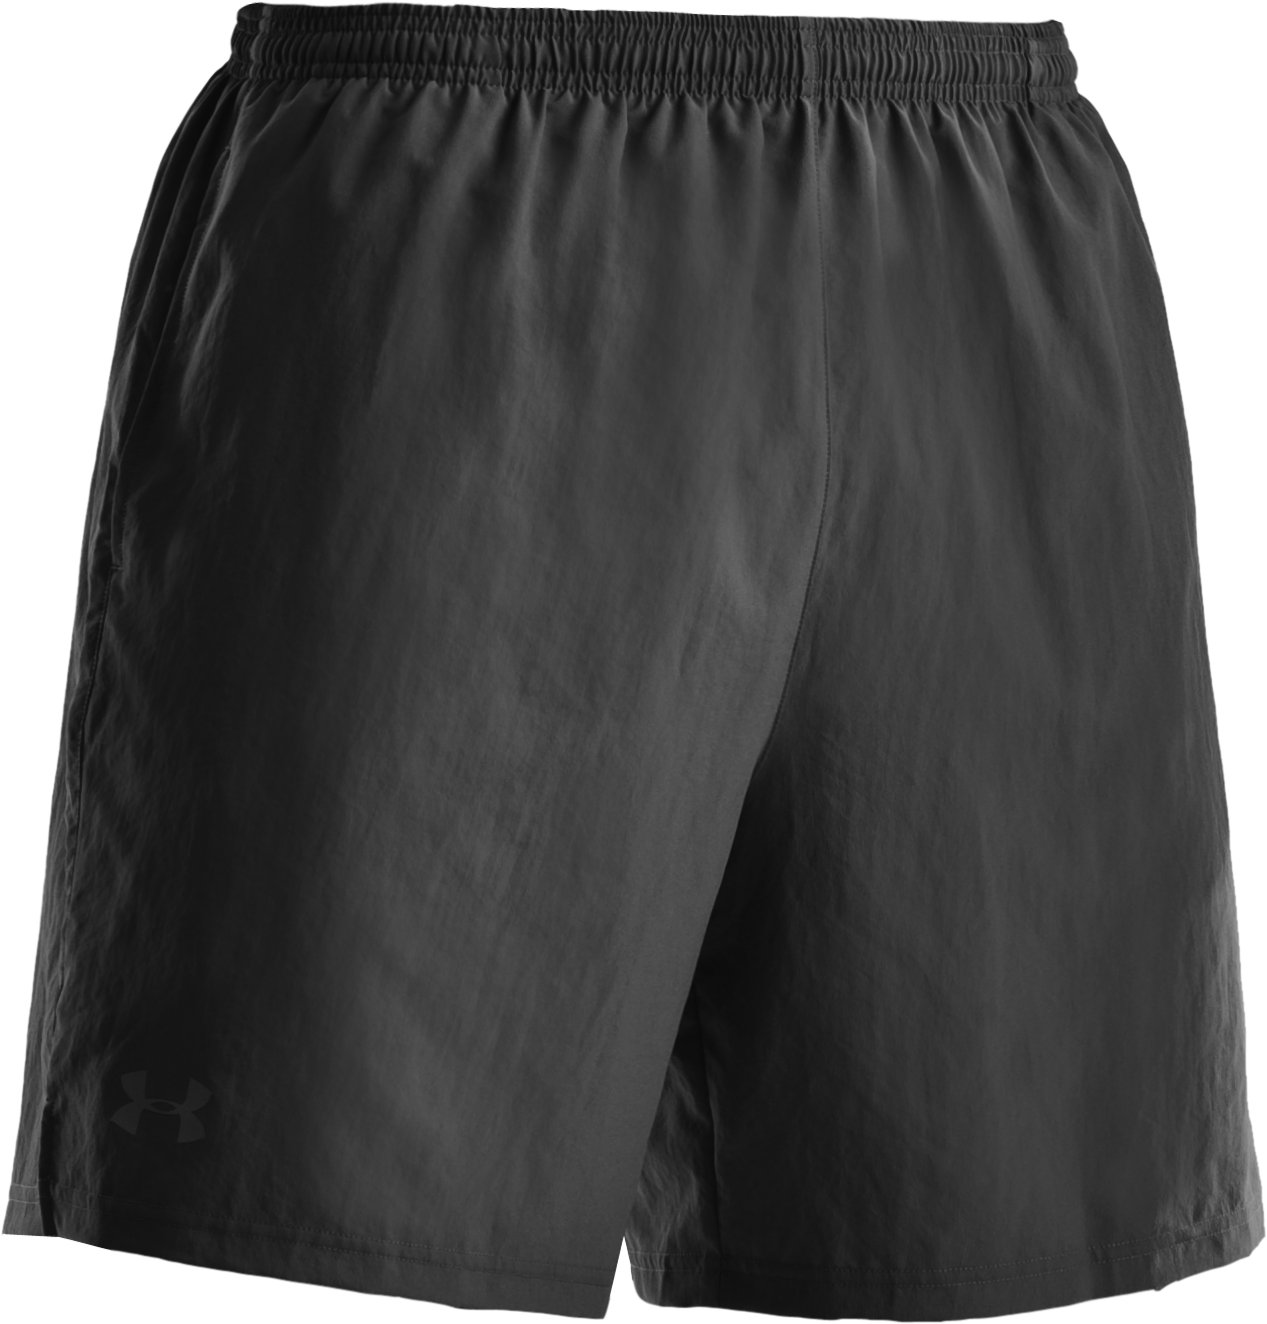 "Men's Tactical 6"" Training Shorts, Black"